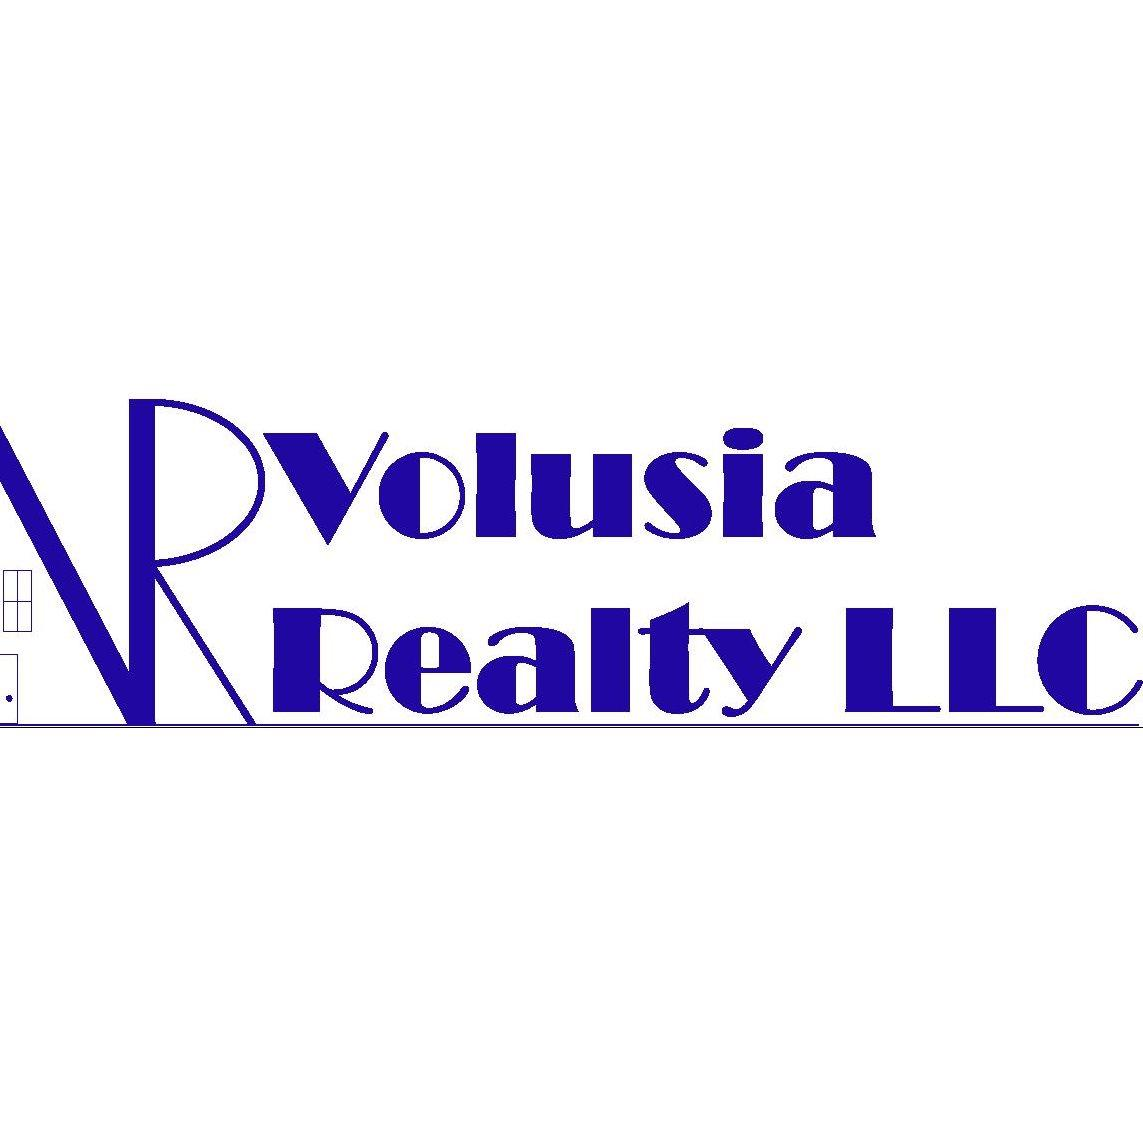 volusia realty llc